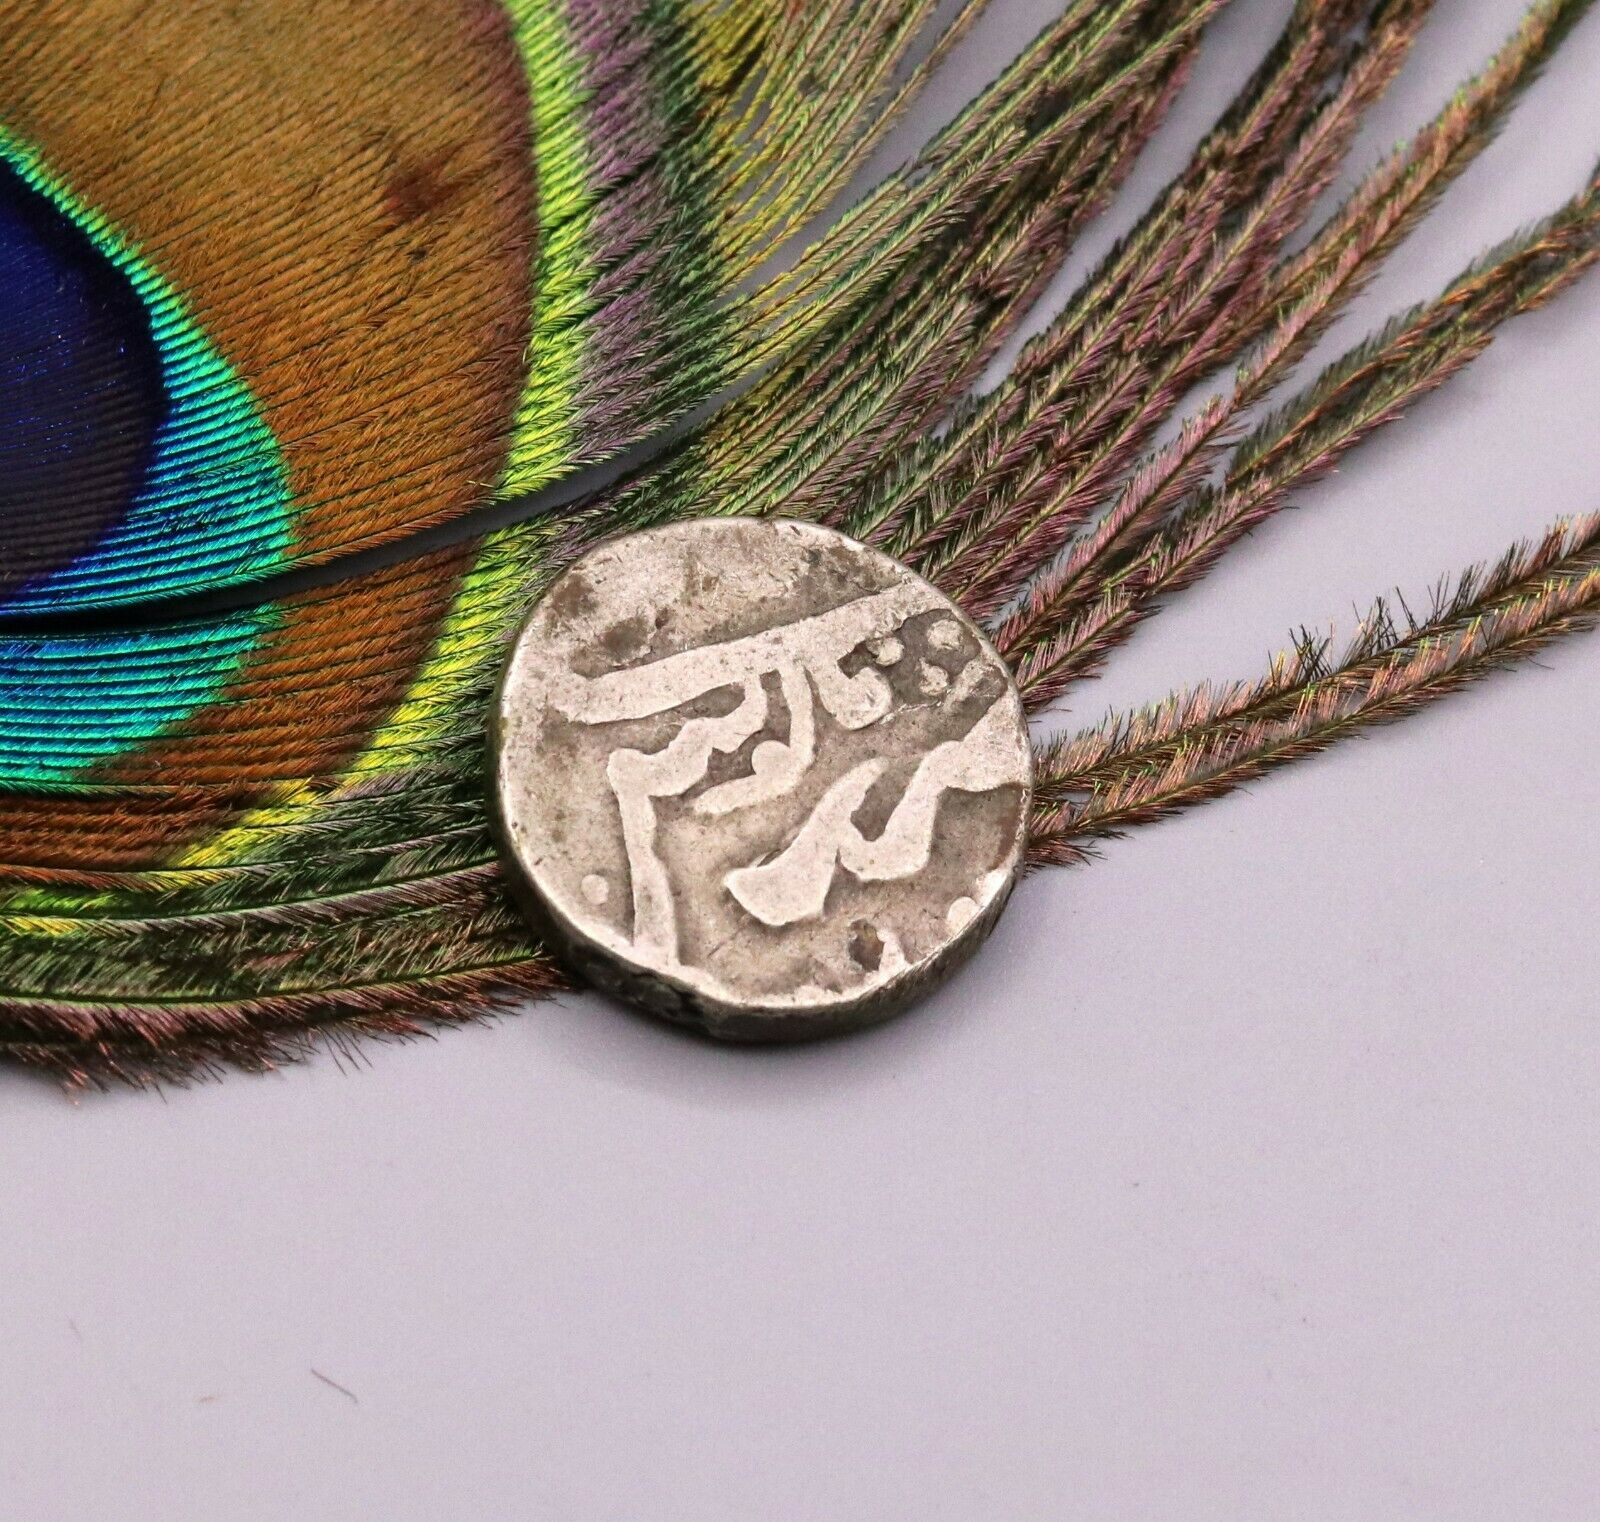 OLD HANDMADE ANCIENT VINTAGE SOLID SILVER COIN FOR MAKING ANTIQUE JEWELRY  cn07